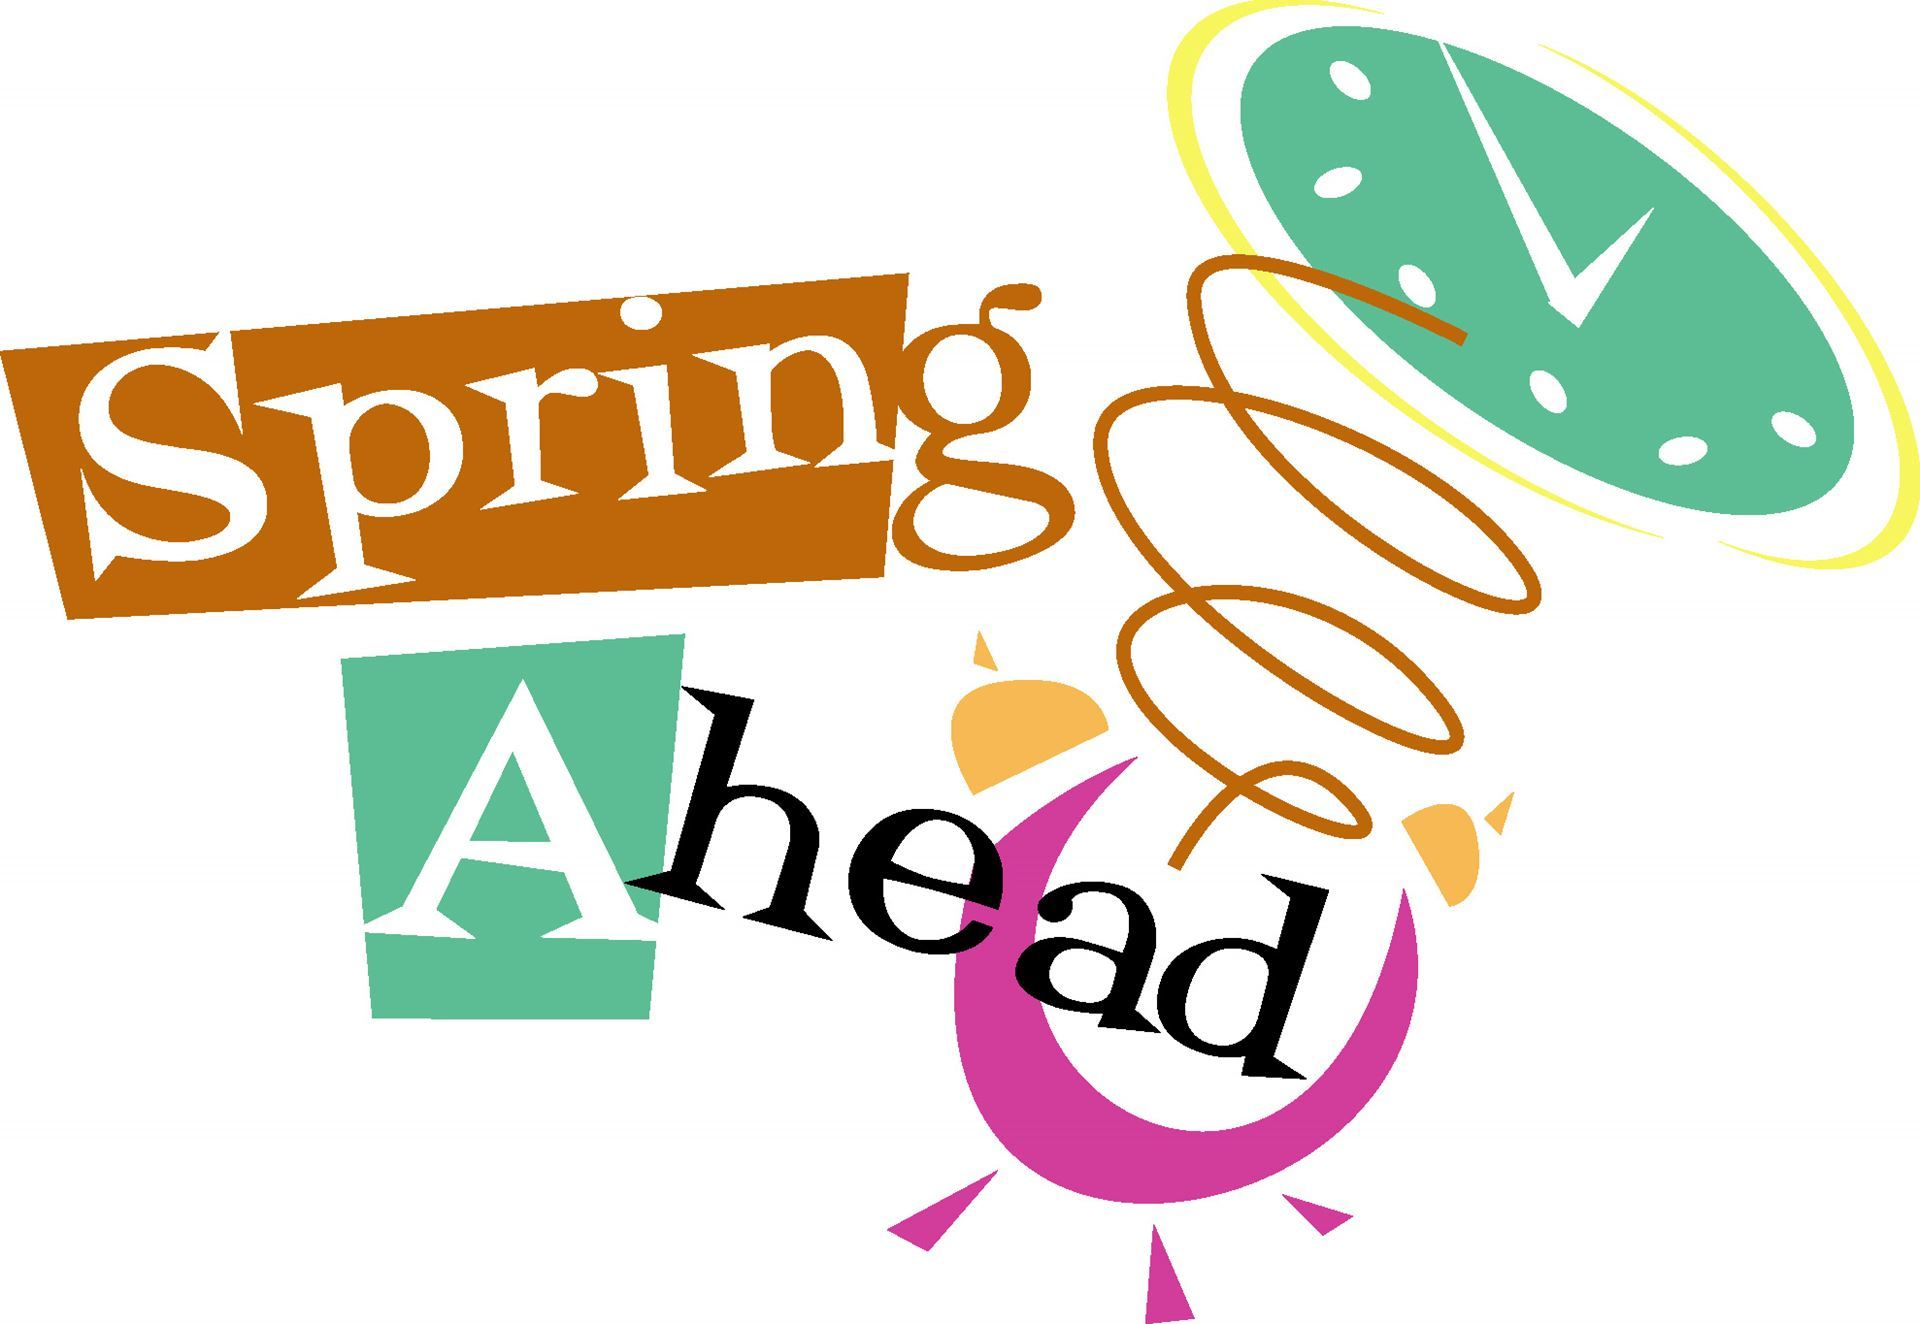 Daylight savings clipart spring forward. Antelope club ahead set